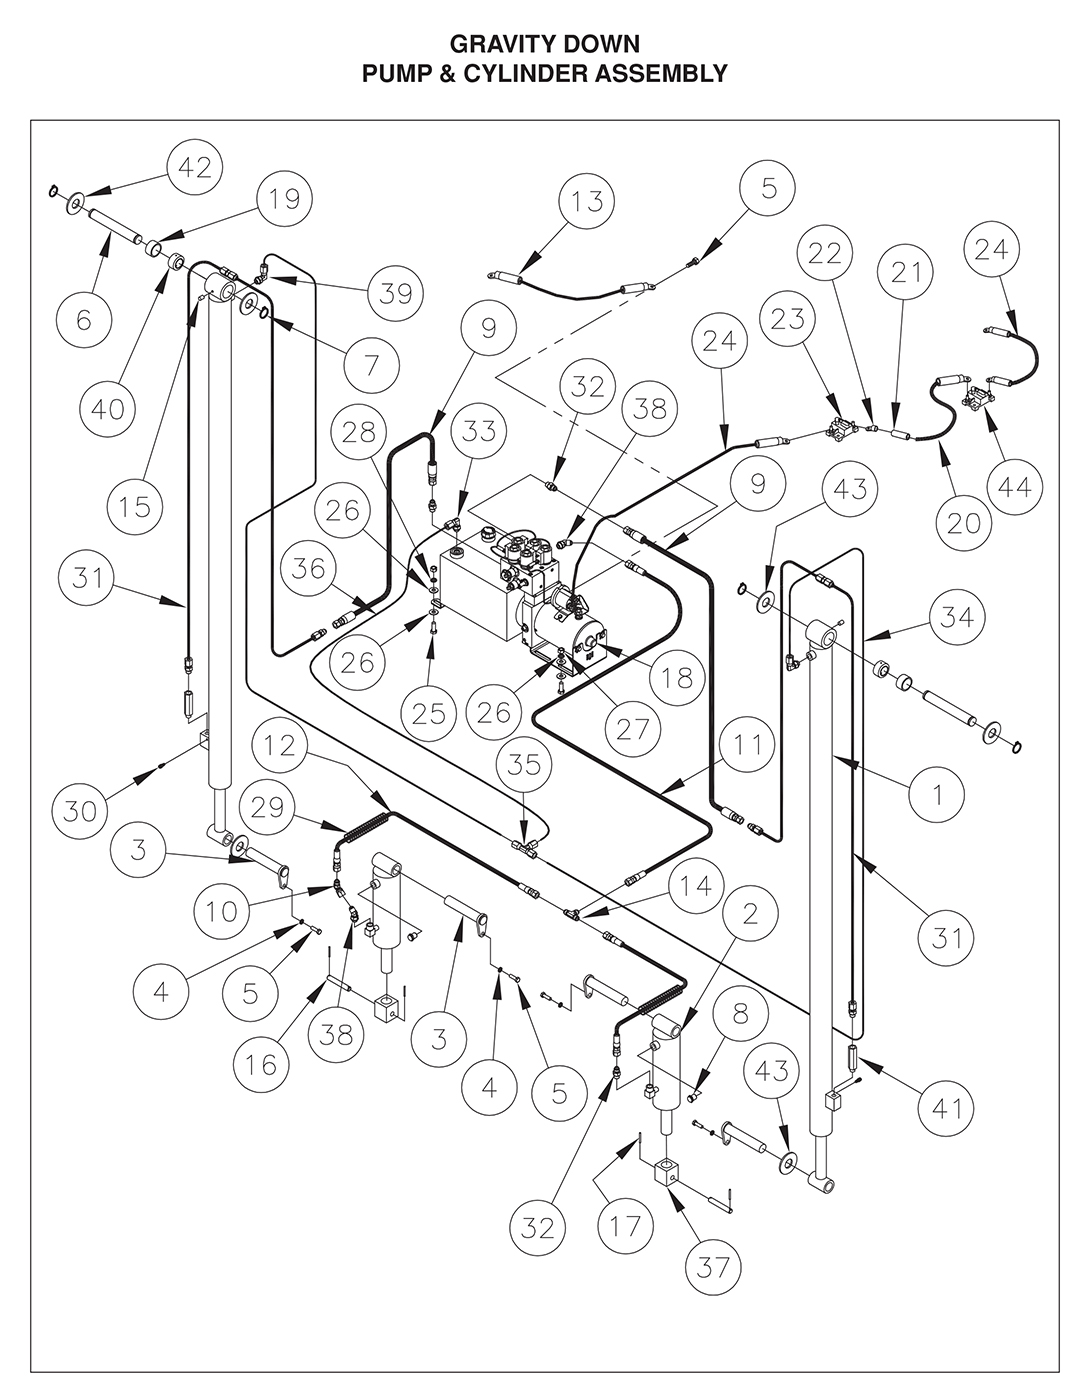 TDR 44/55/66 Pump & Cylinder Assembly (Gravity Down) Diagram